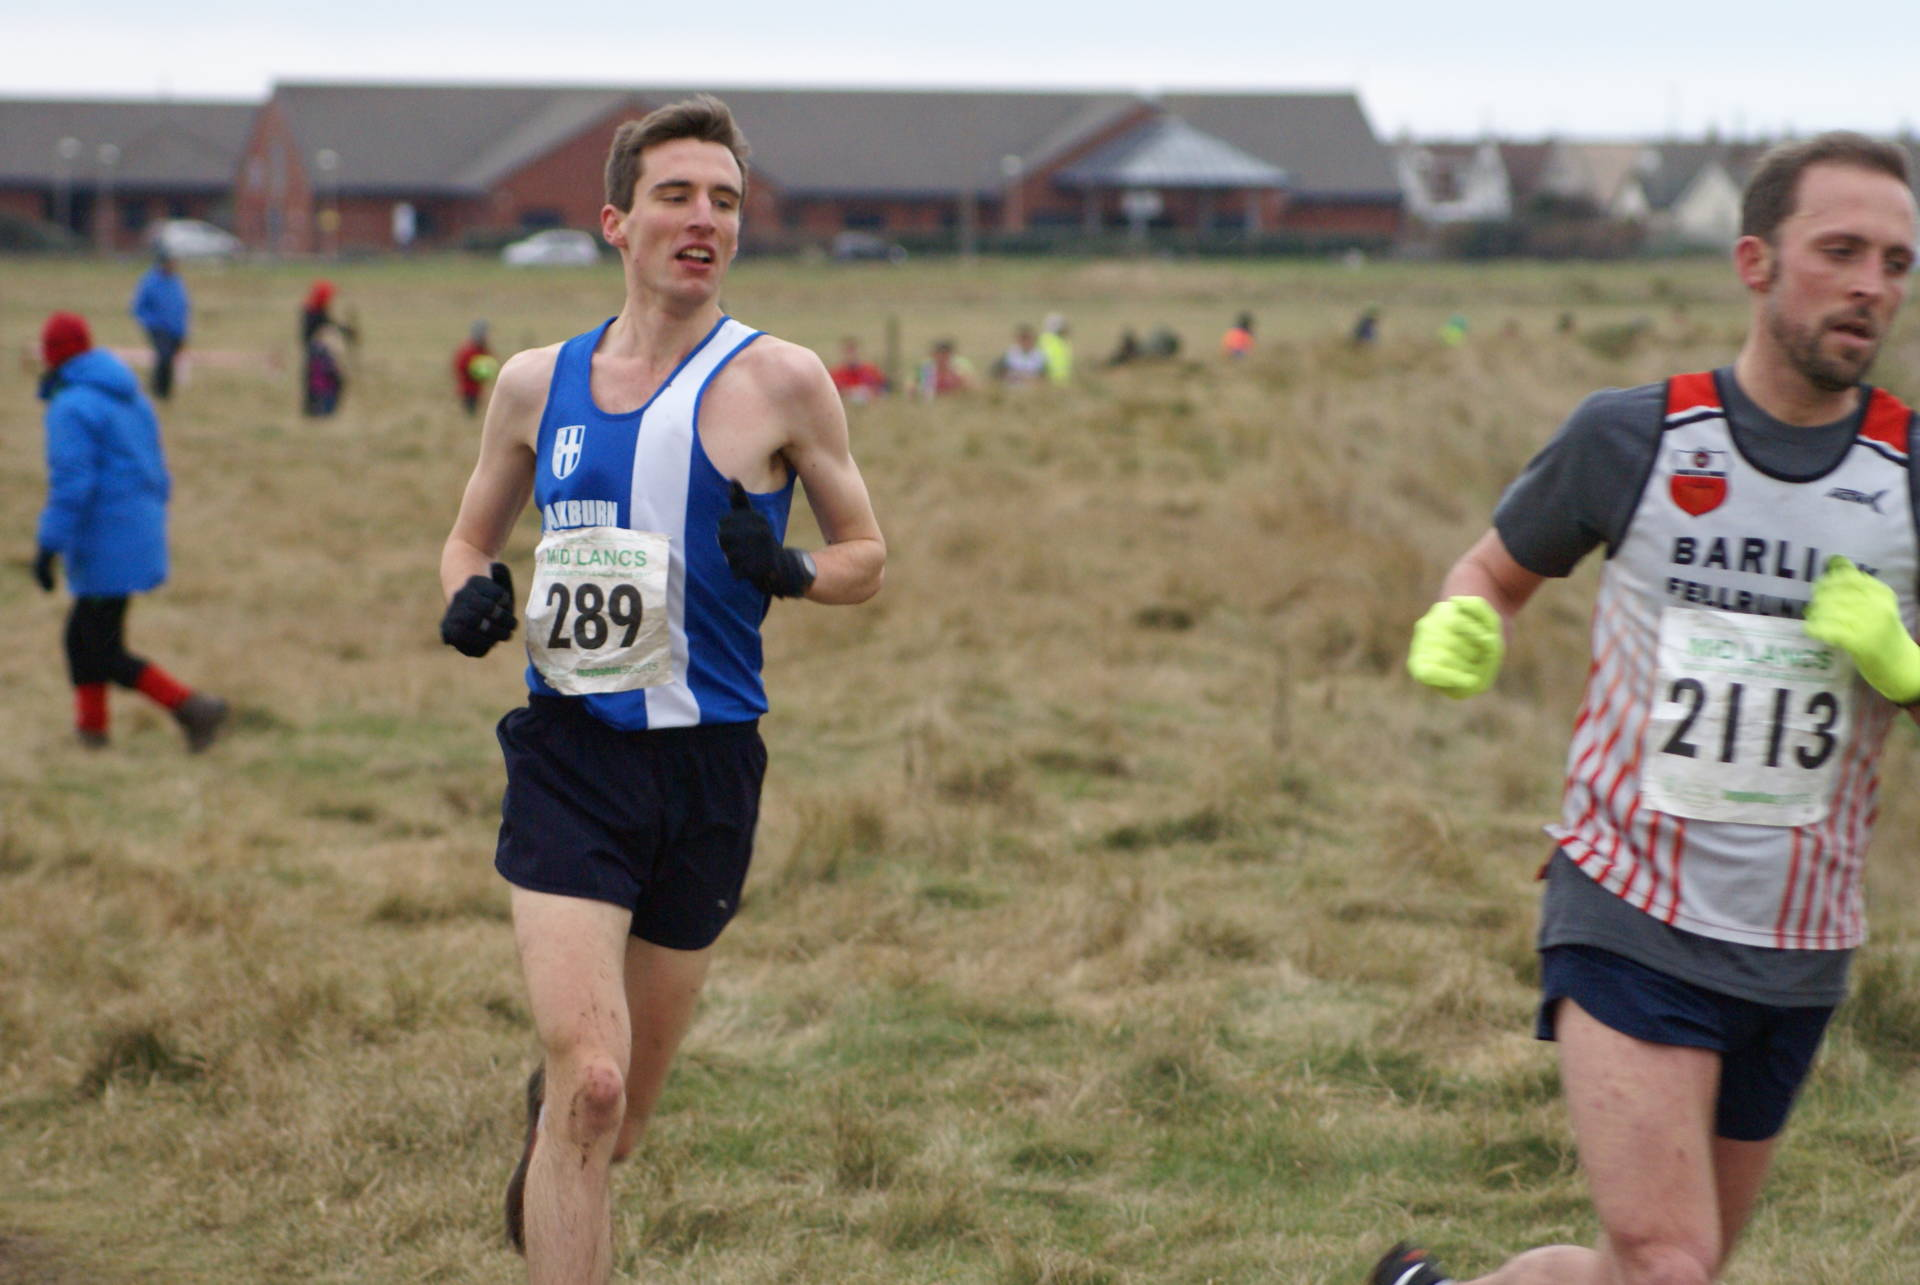 Mid Lancs League at Rossall – Win for Rachel at Windy Hill – Vet Wins for Paul & Joanne at Parbold Hill Race – Matt is 1st V45 at Fastrax 5k